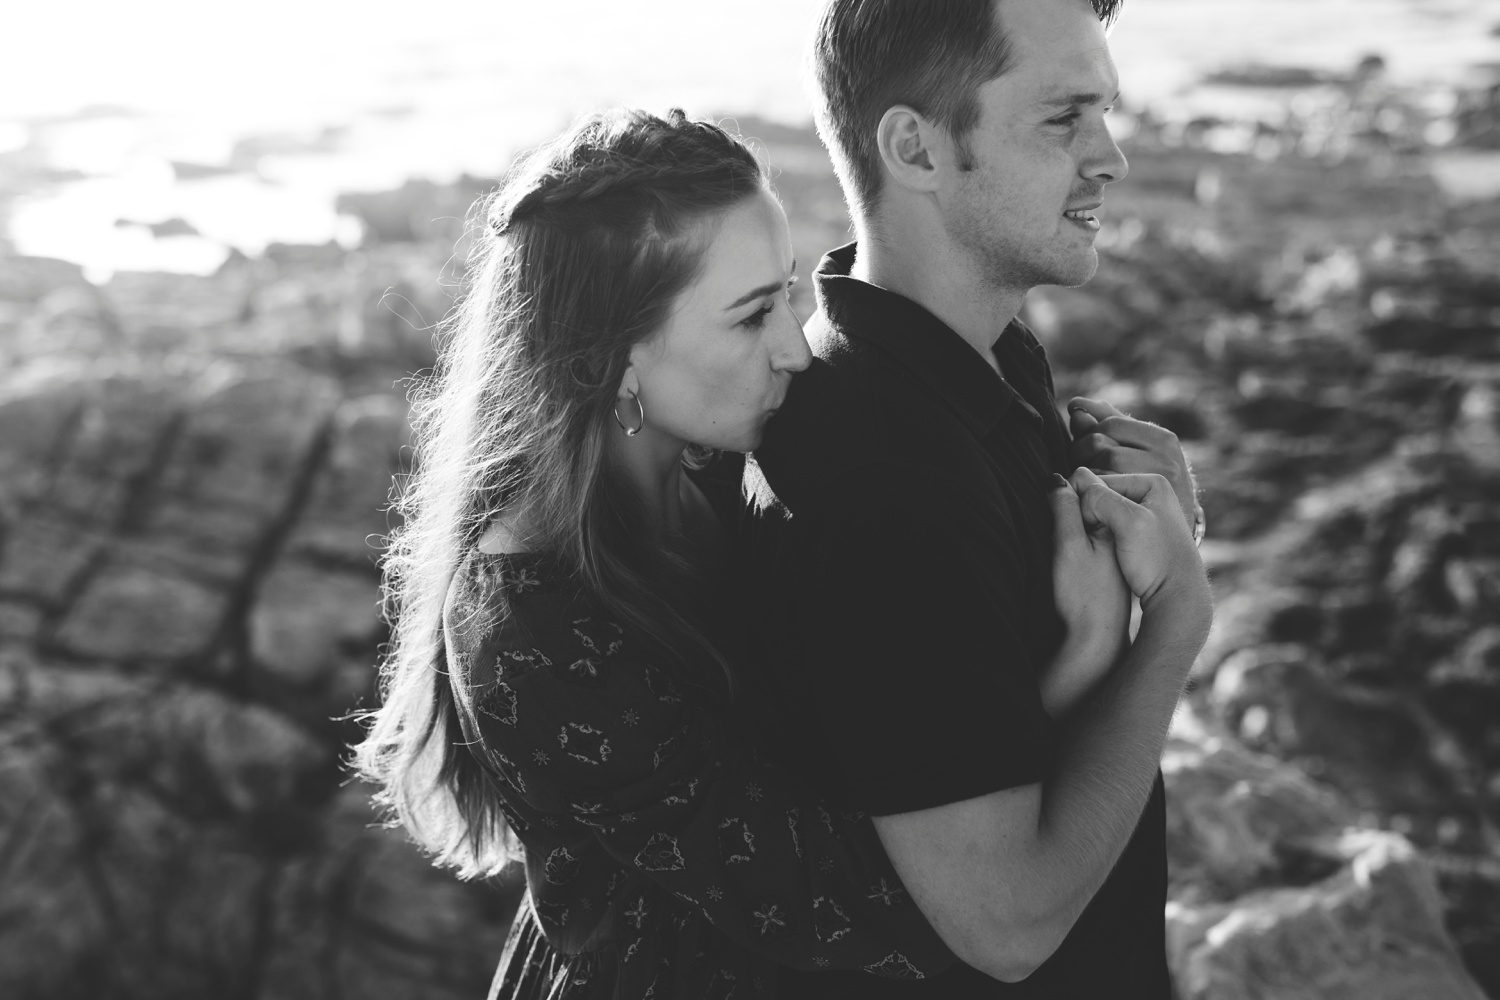 Marie&Andre-CharlieRay-st-francis-cape-ocean-wild-side-couple_0528.jpg